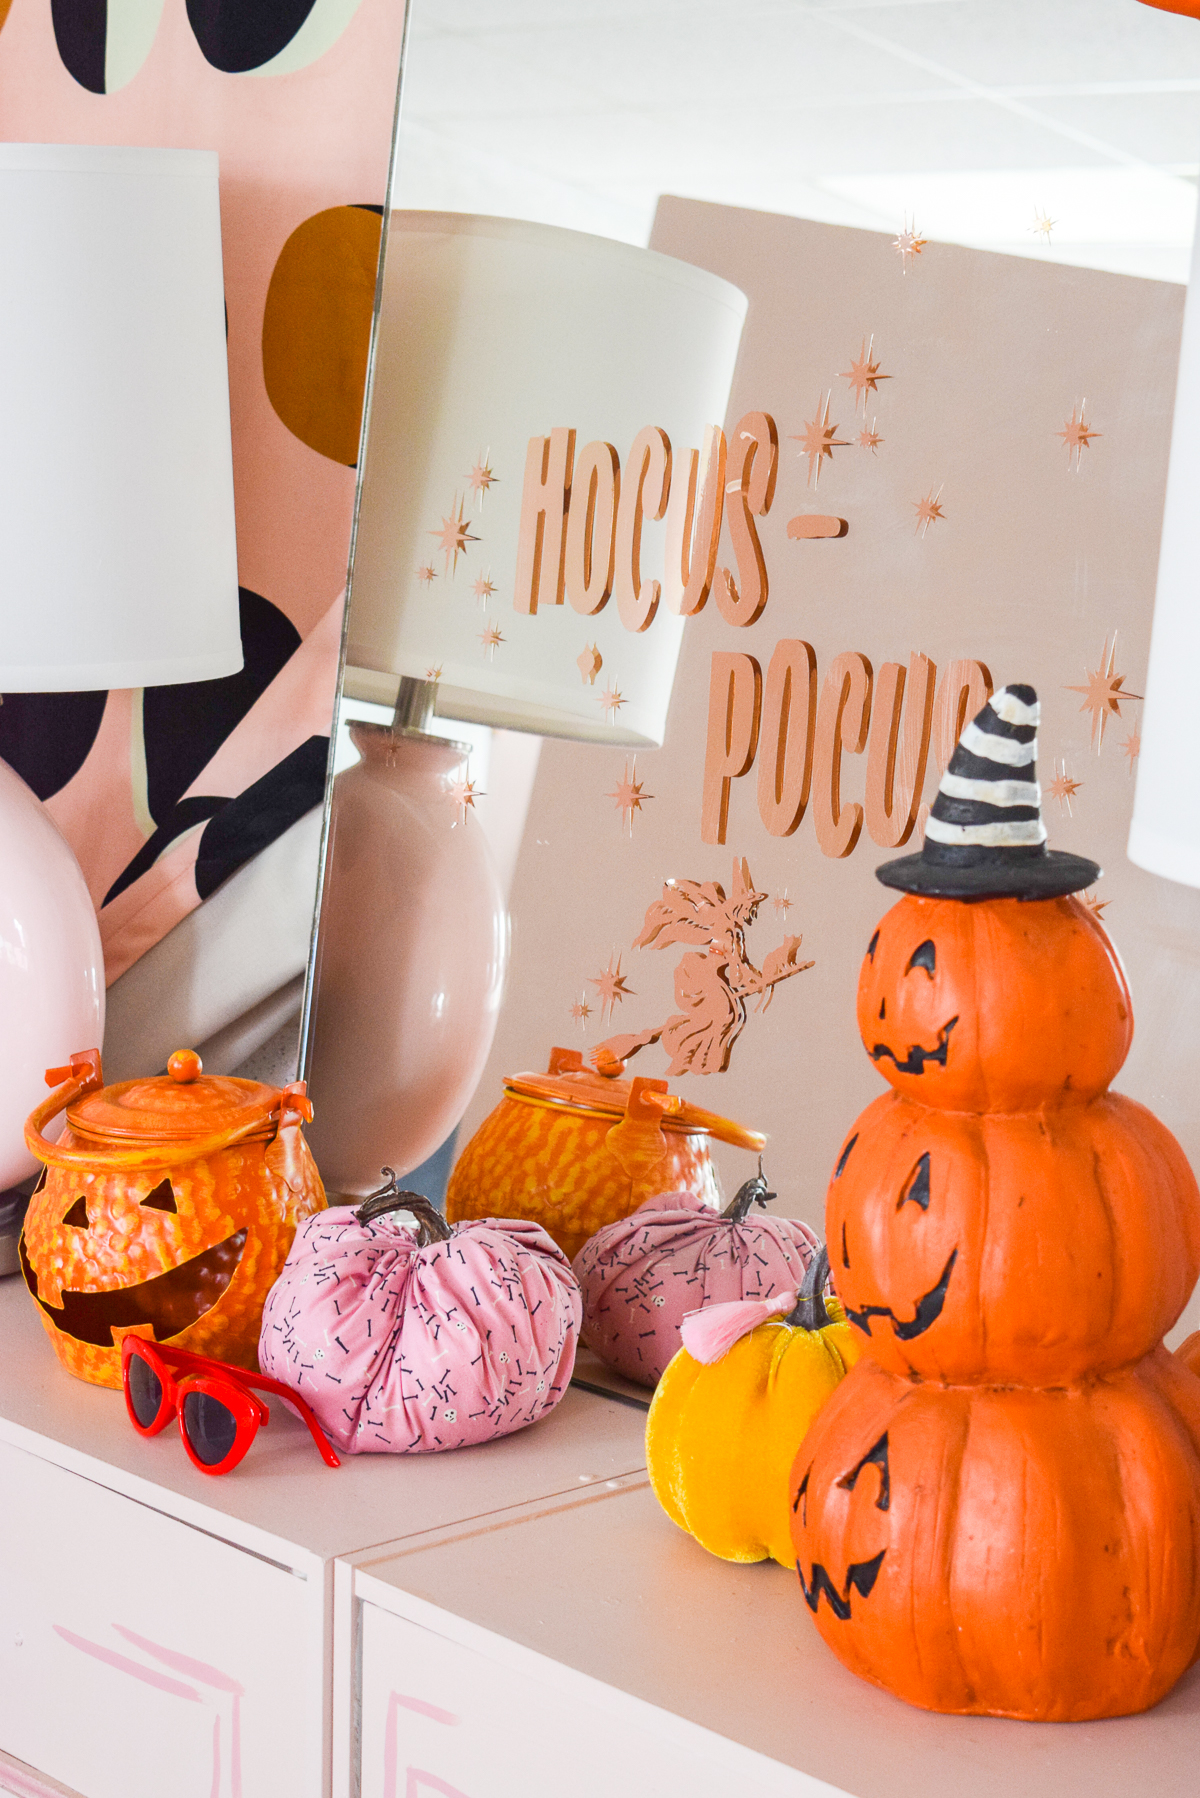 hocus pocus mirror sitting on a pink console with halloween pumpkins